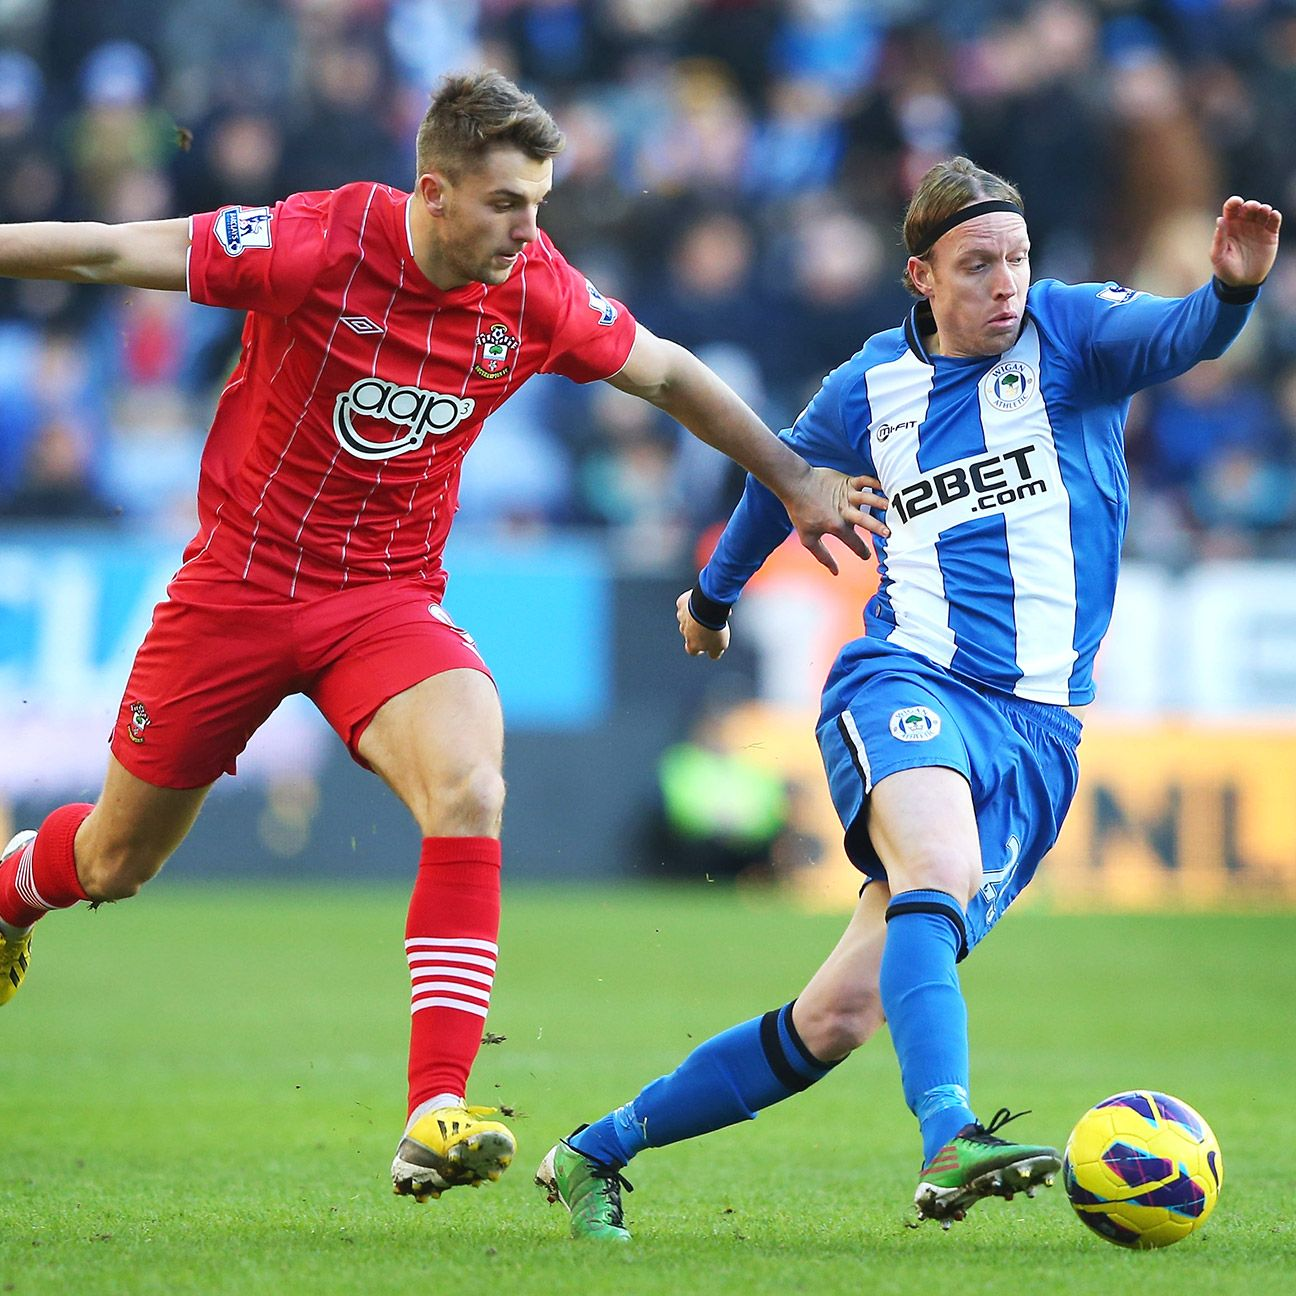 Southampton's entertaining 2-2 draw with Wigan in February 2013 should be the type of contest that supporters can expect when Tottenham meet Everton this season.